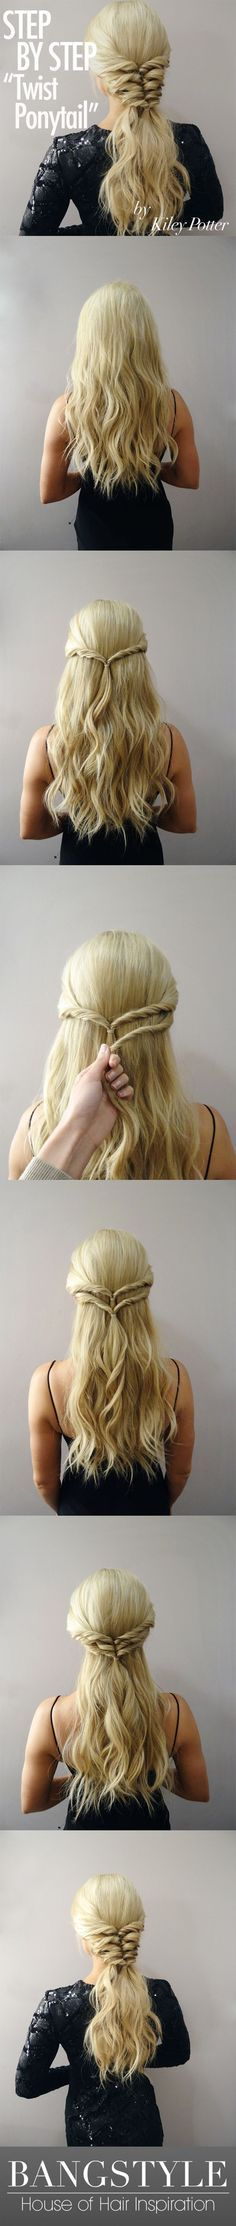 Twist Pony Tail Braid for long thick hair